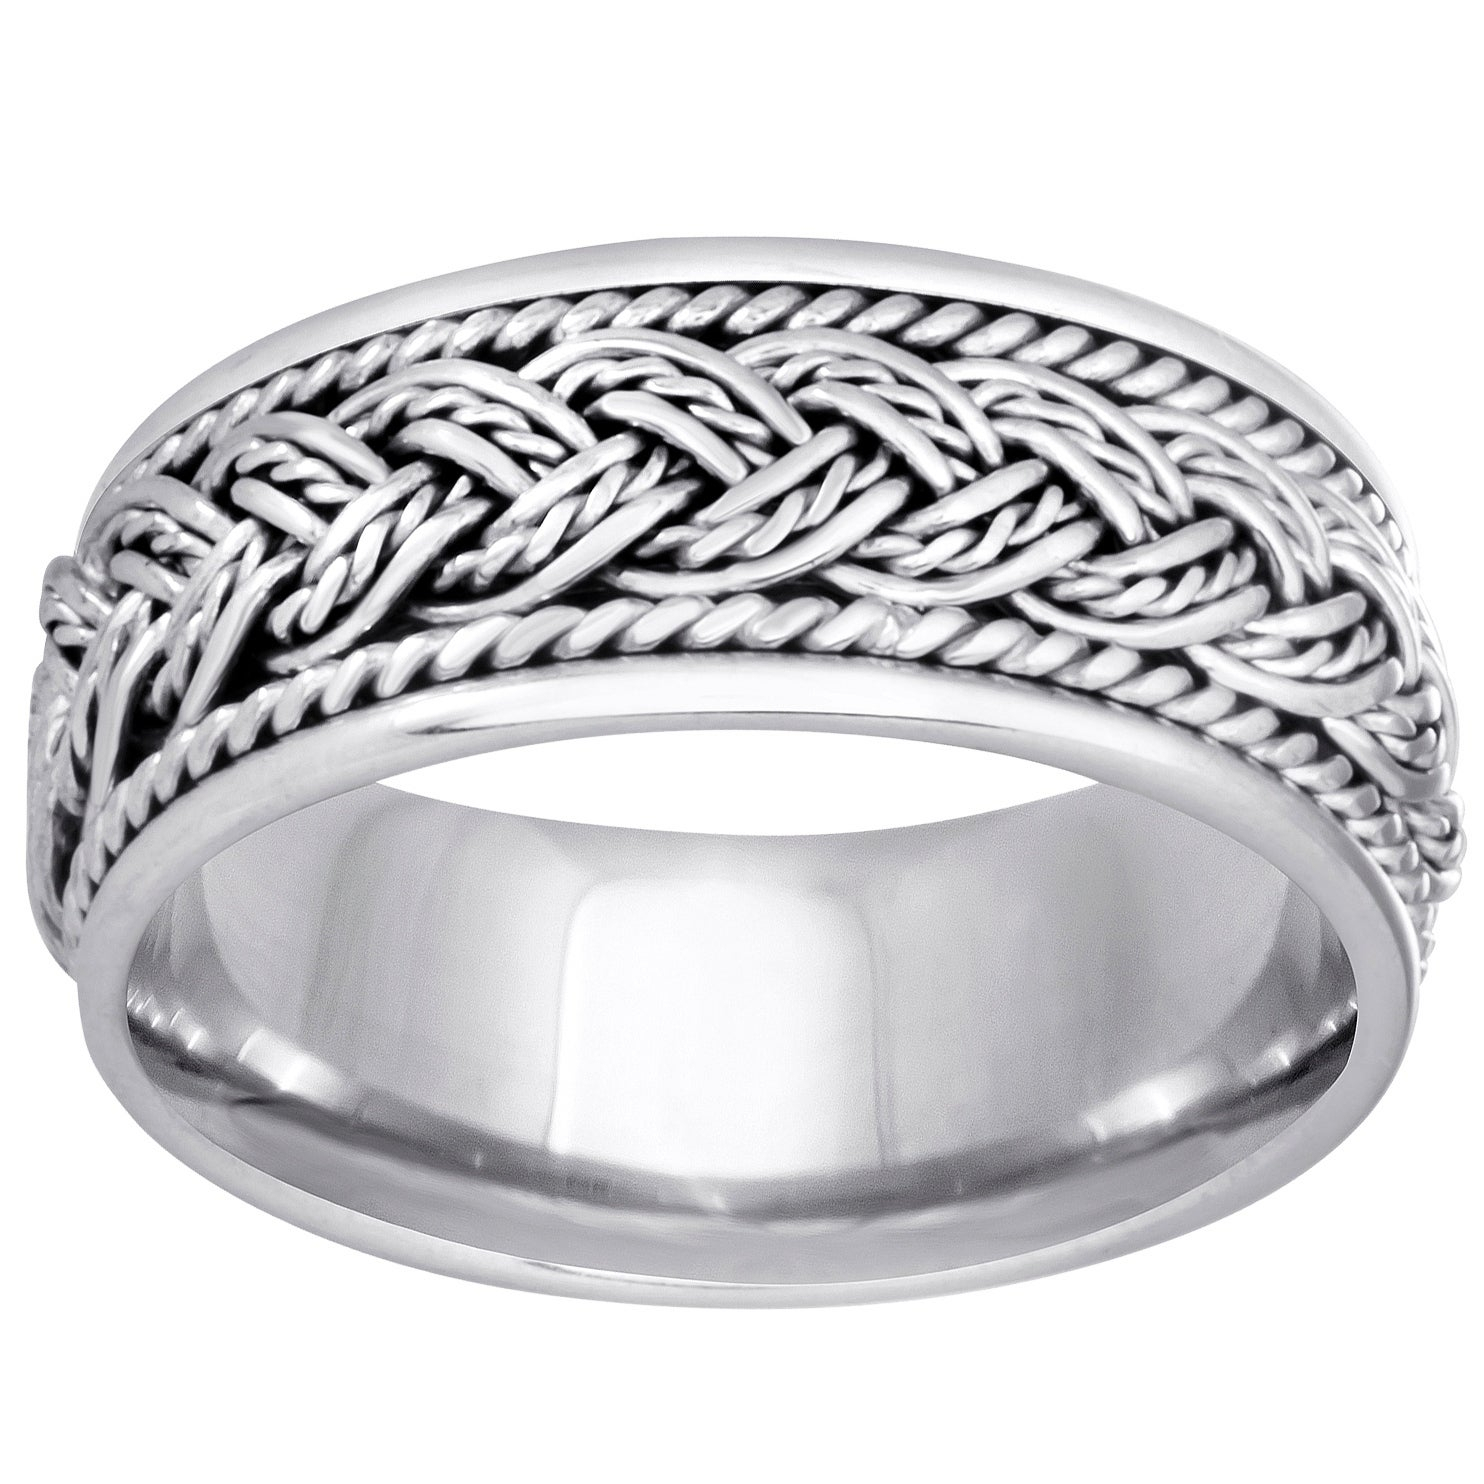 14k White Gold Handmade Braided Comfort Fit Women's Wedding Bands With Regard To Best And Newest Diamond Braid Anniversary Bands In White Gold (View 17 of 25)